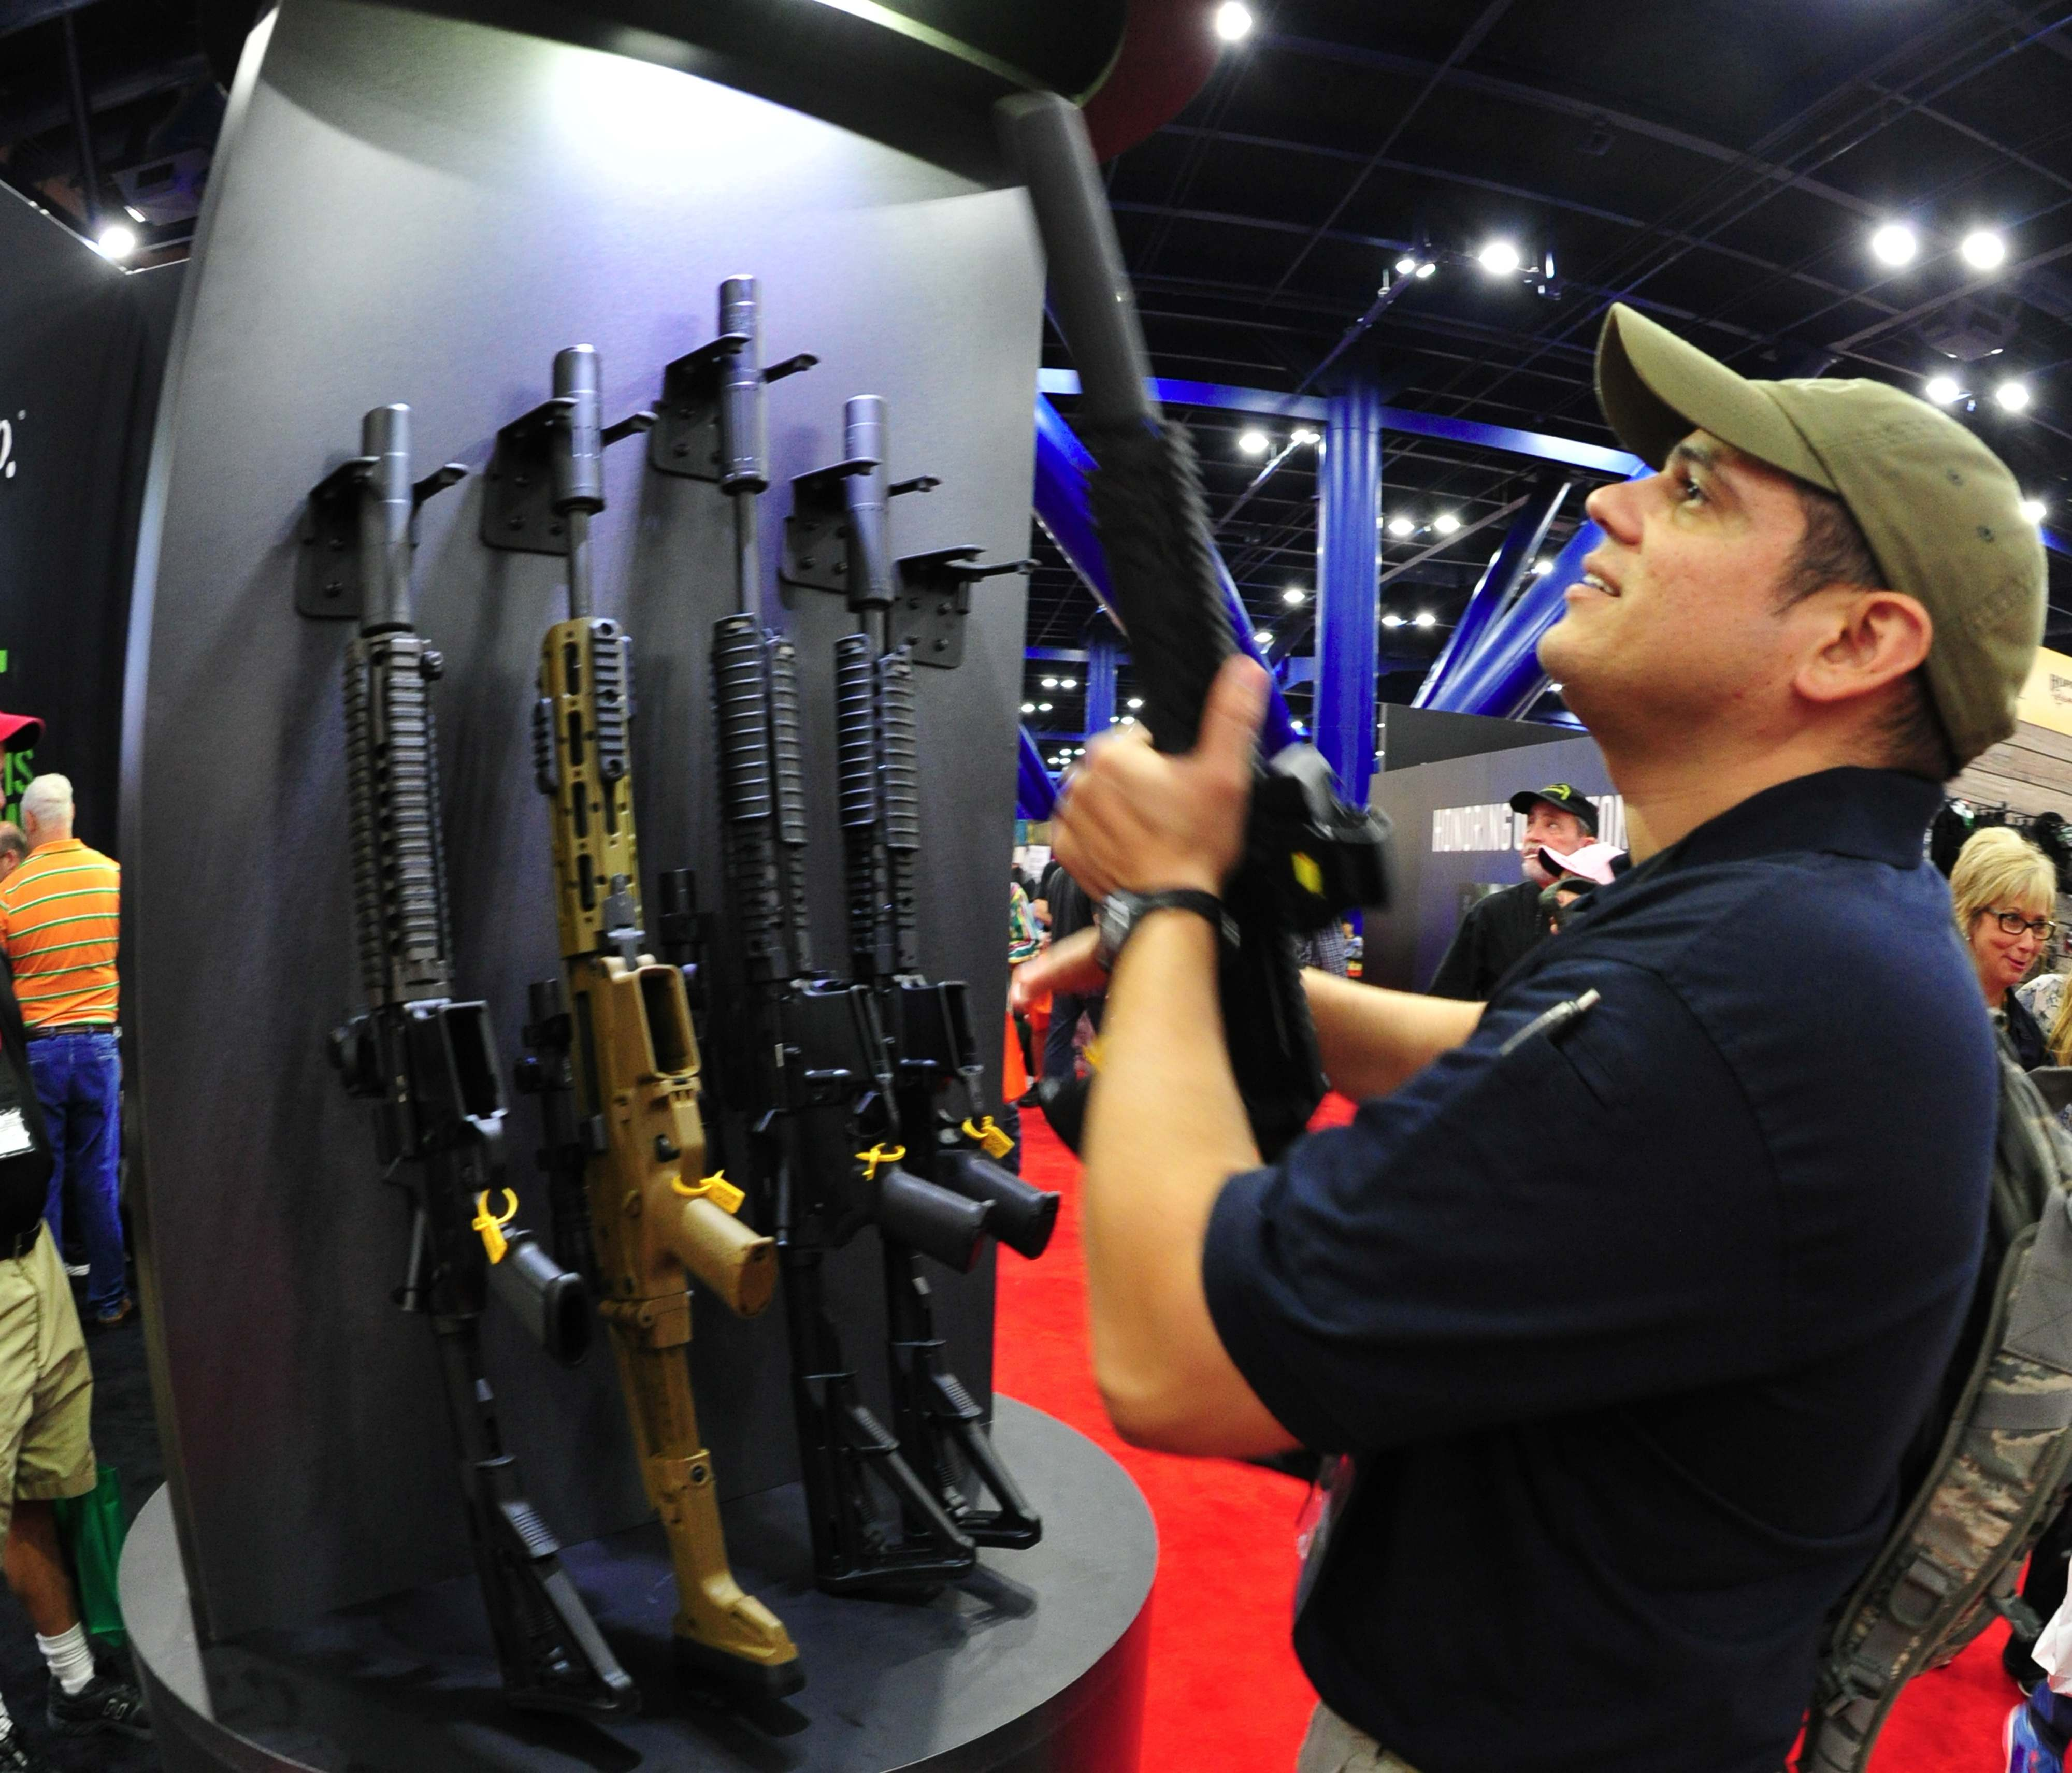 A convention goer picks up a weapon equipped with a silencer during the 142nd annual National Rifle Association(NRA) Convention at the George R. Brown Convention Center May 4, 2013 in Houston, Texas.